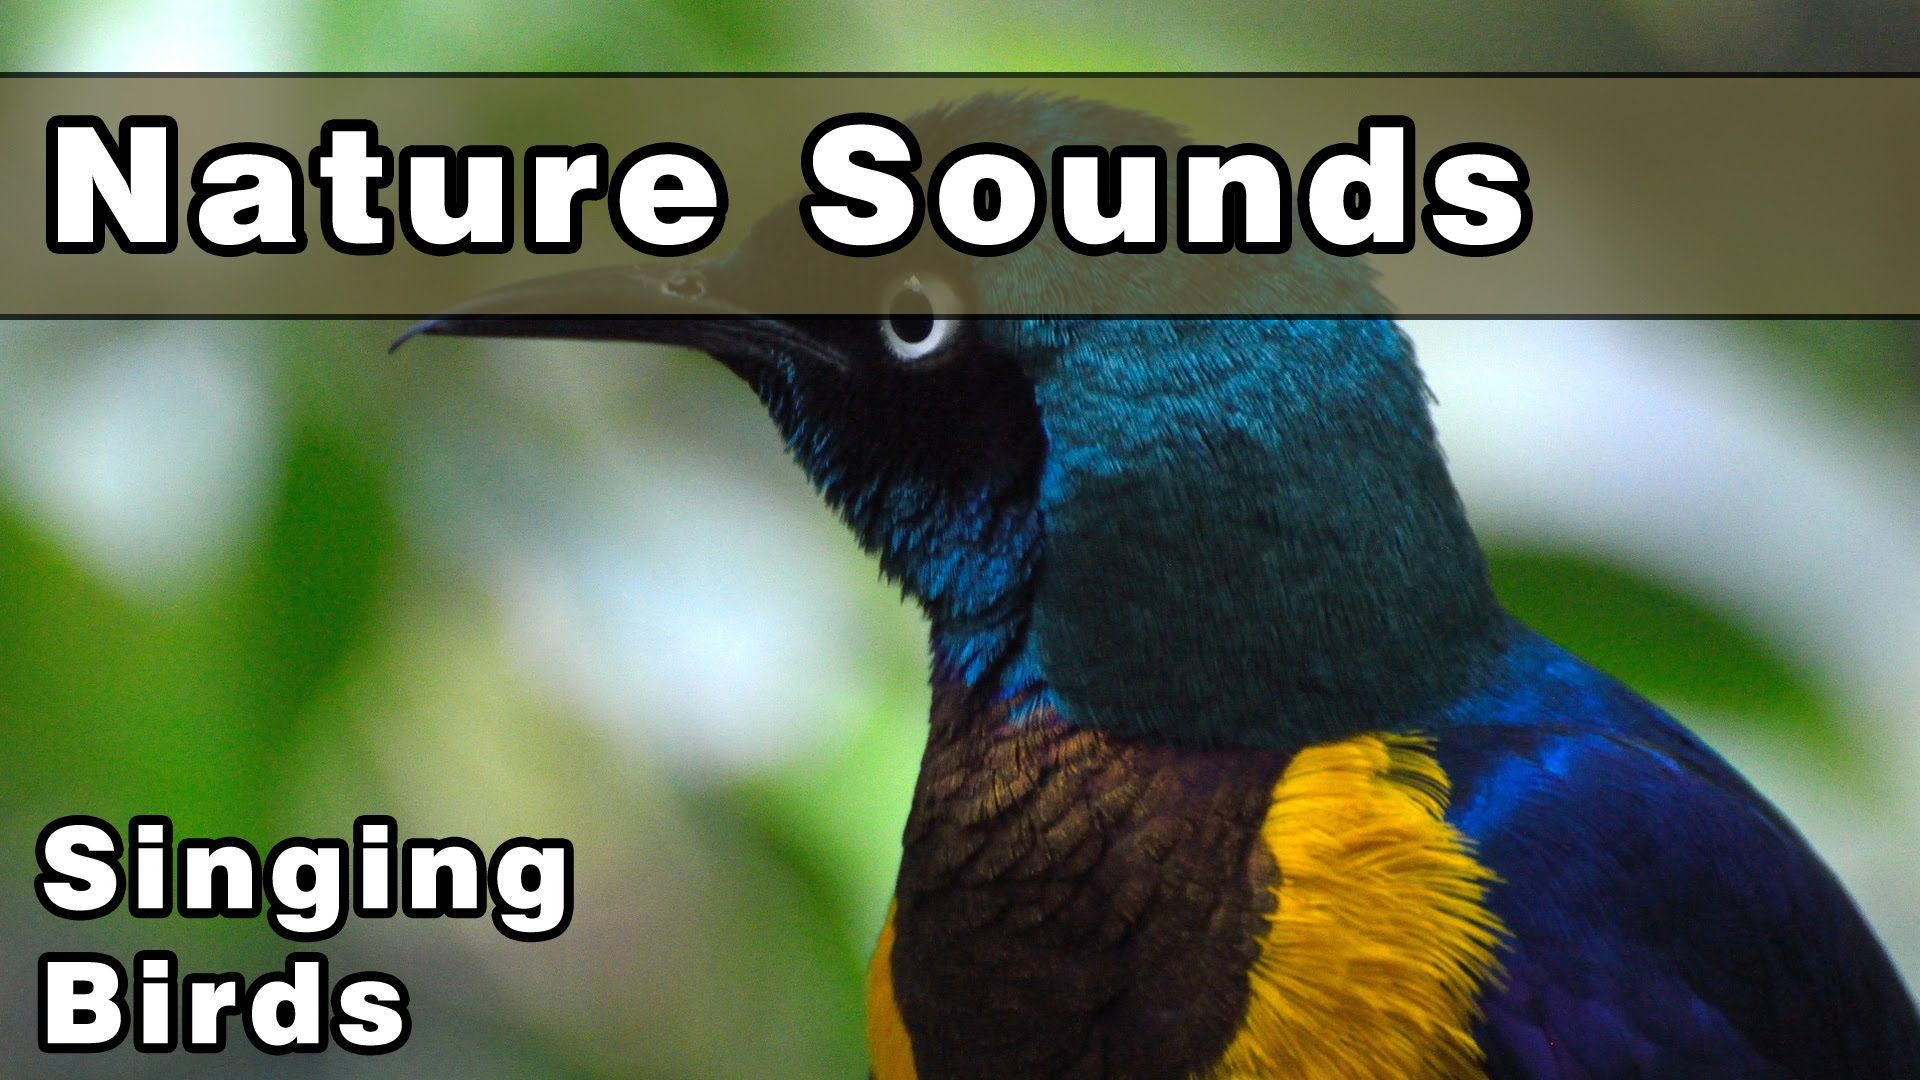 This video features 12 Hours of Singing Birds Nature Sounds